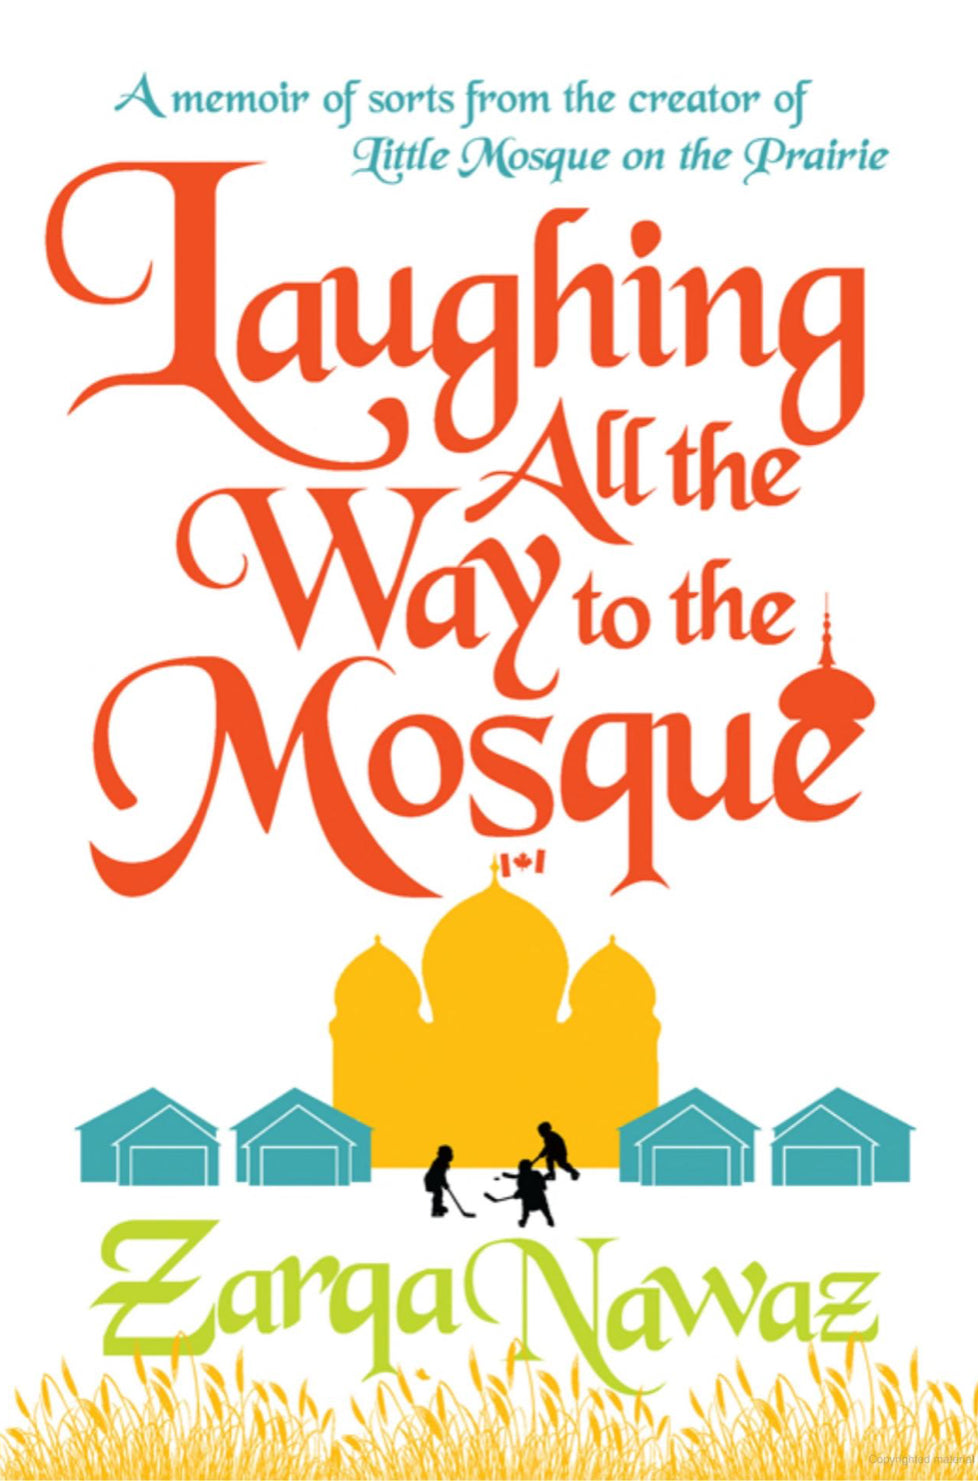 Laughing All the Way to the Mosque-Adult Book-Harper-Crescent Moon Store